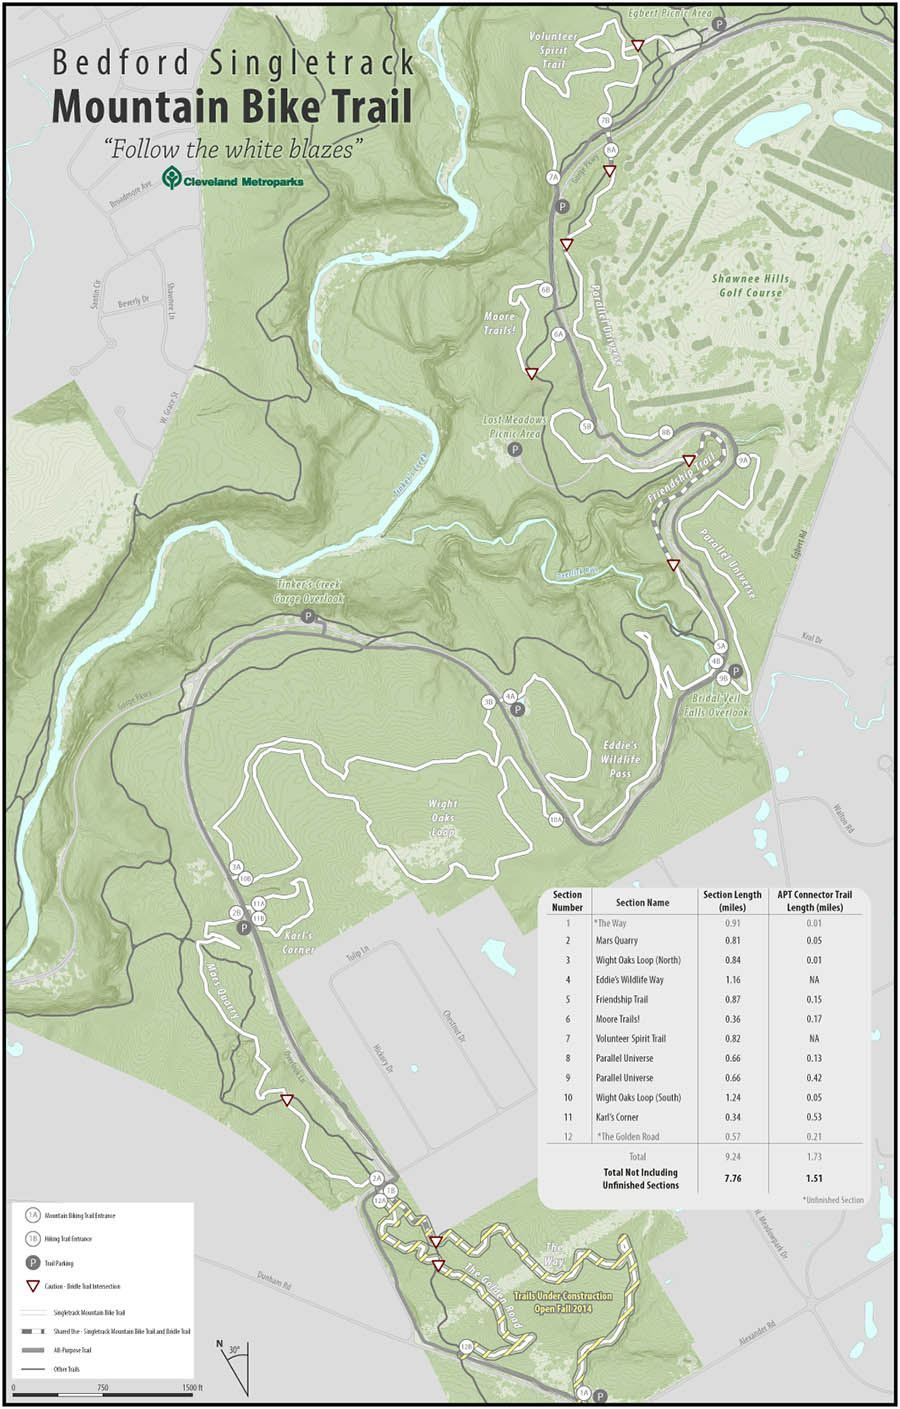 Cleveland Metroparks Bedford Single Track Mountain Bike Trail map